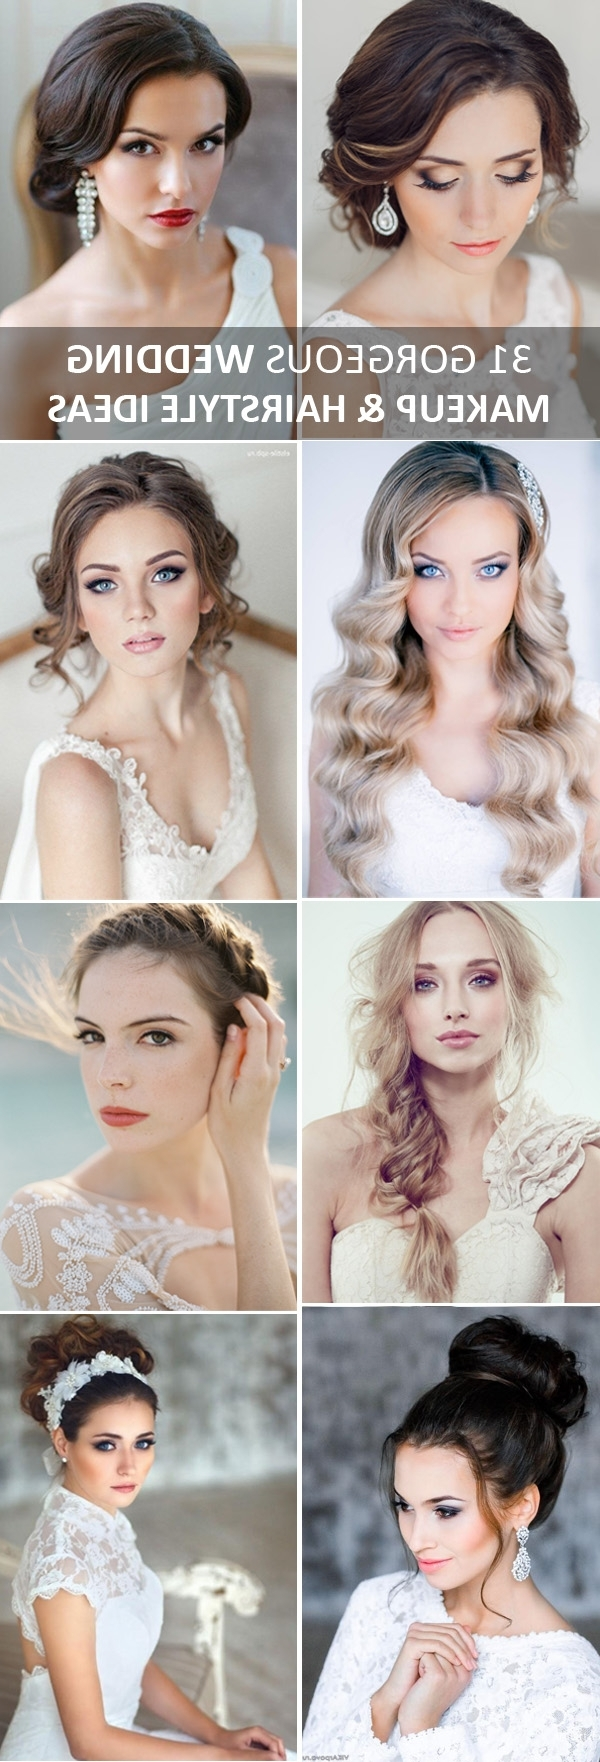 2017 Wedding Hairstyles And Makeup In 31 Gorgeous Wedding Makeup & Hairstyle Ideas For Every Bride (Gallery 5 of 15)